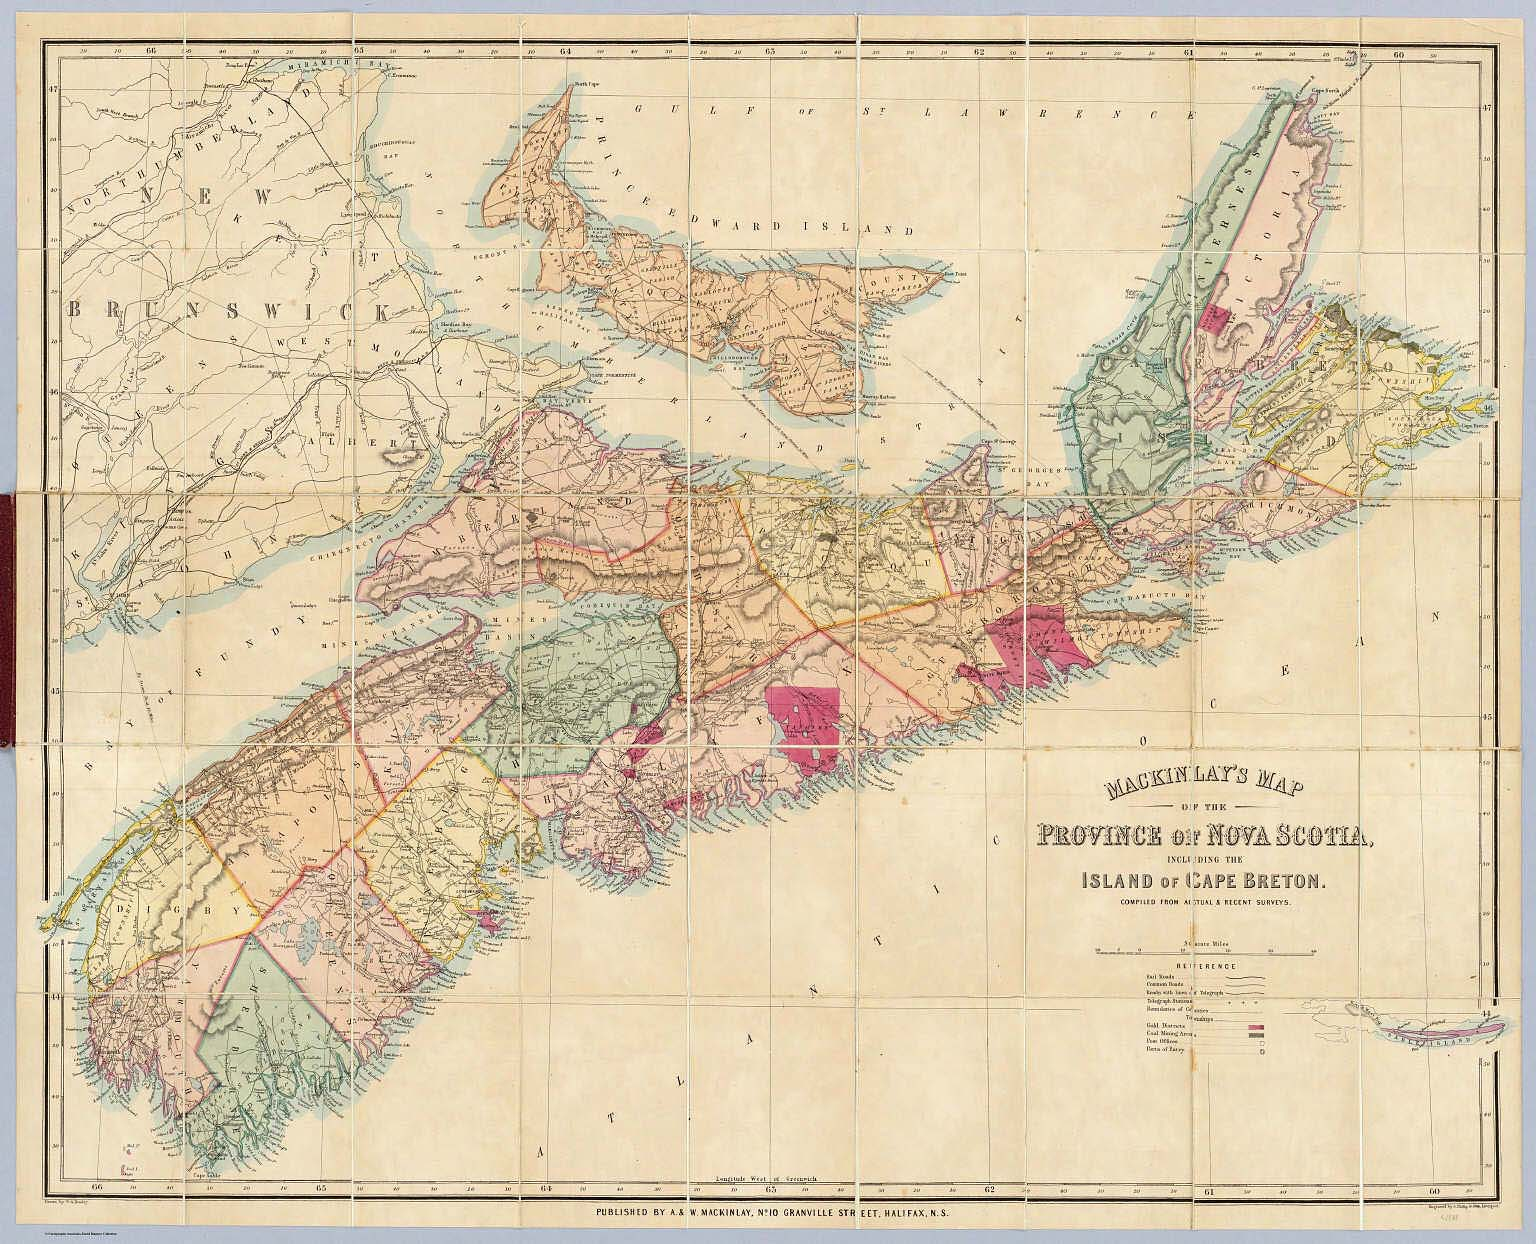 Mackinlay's map of the Province of Nova Scotia, including ... on nova scotia map, bay of fundy map, dallas island map, cayo costa island map, labrador island map, devon island map, pleasant bay map, st. paul island map, baffin island map, laurentian mountains map, st. catharines map, canada map, atlantic provinces map, ottawa island map, aurora island map, gloucester island map, cabot trail map, snake island map, peggy's cove map, island nautical map,